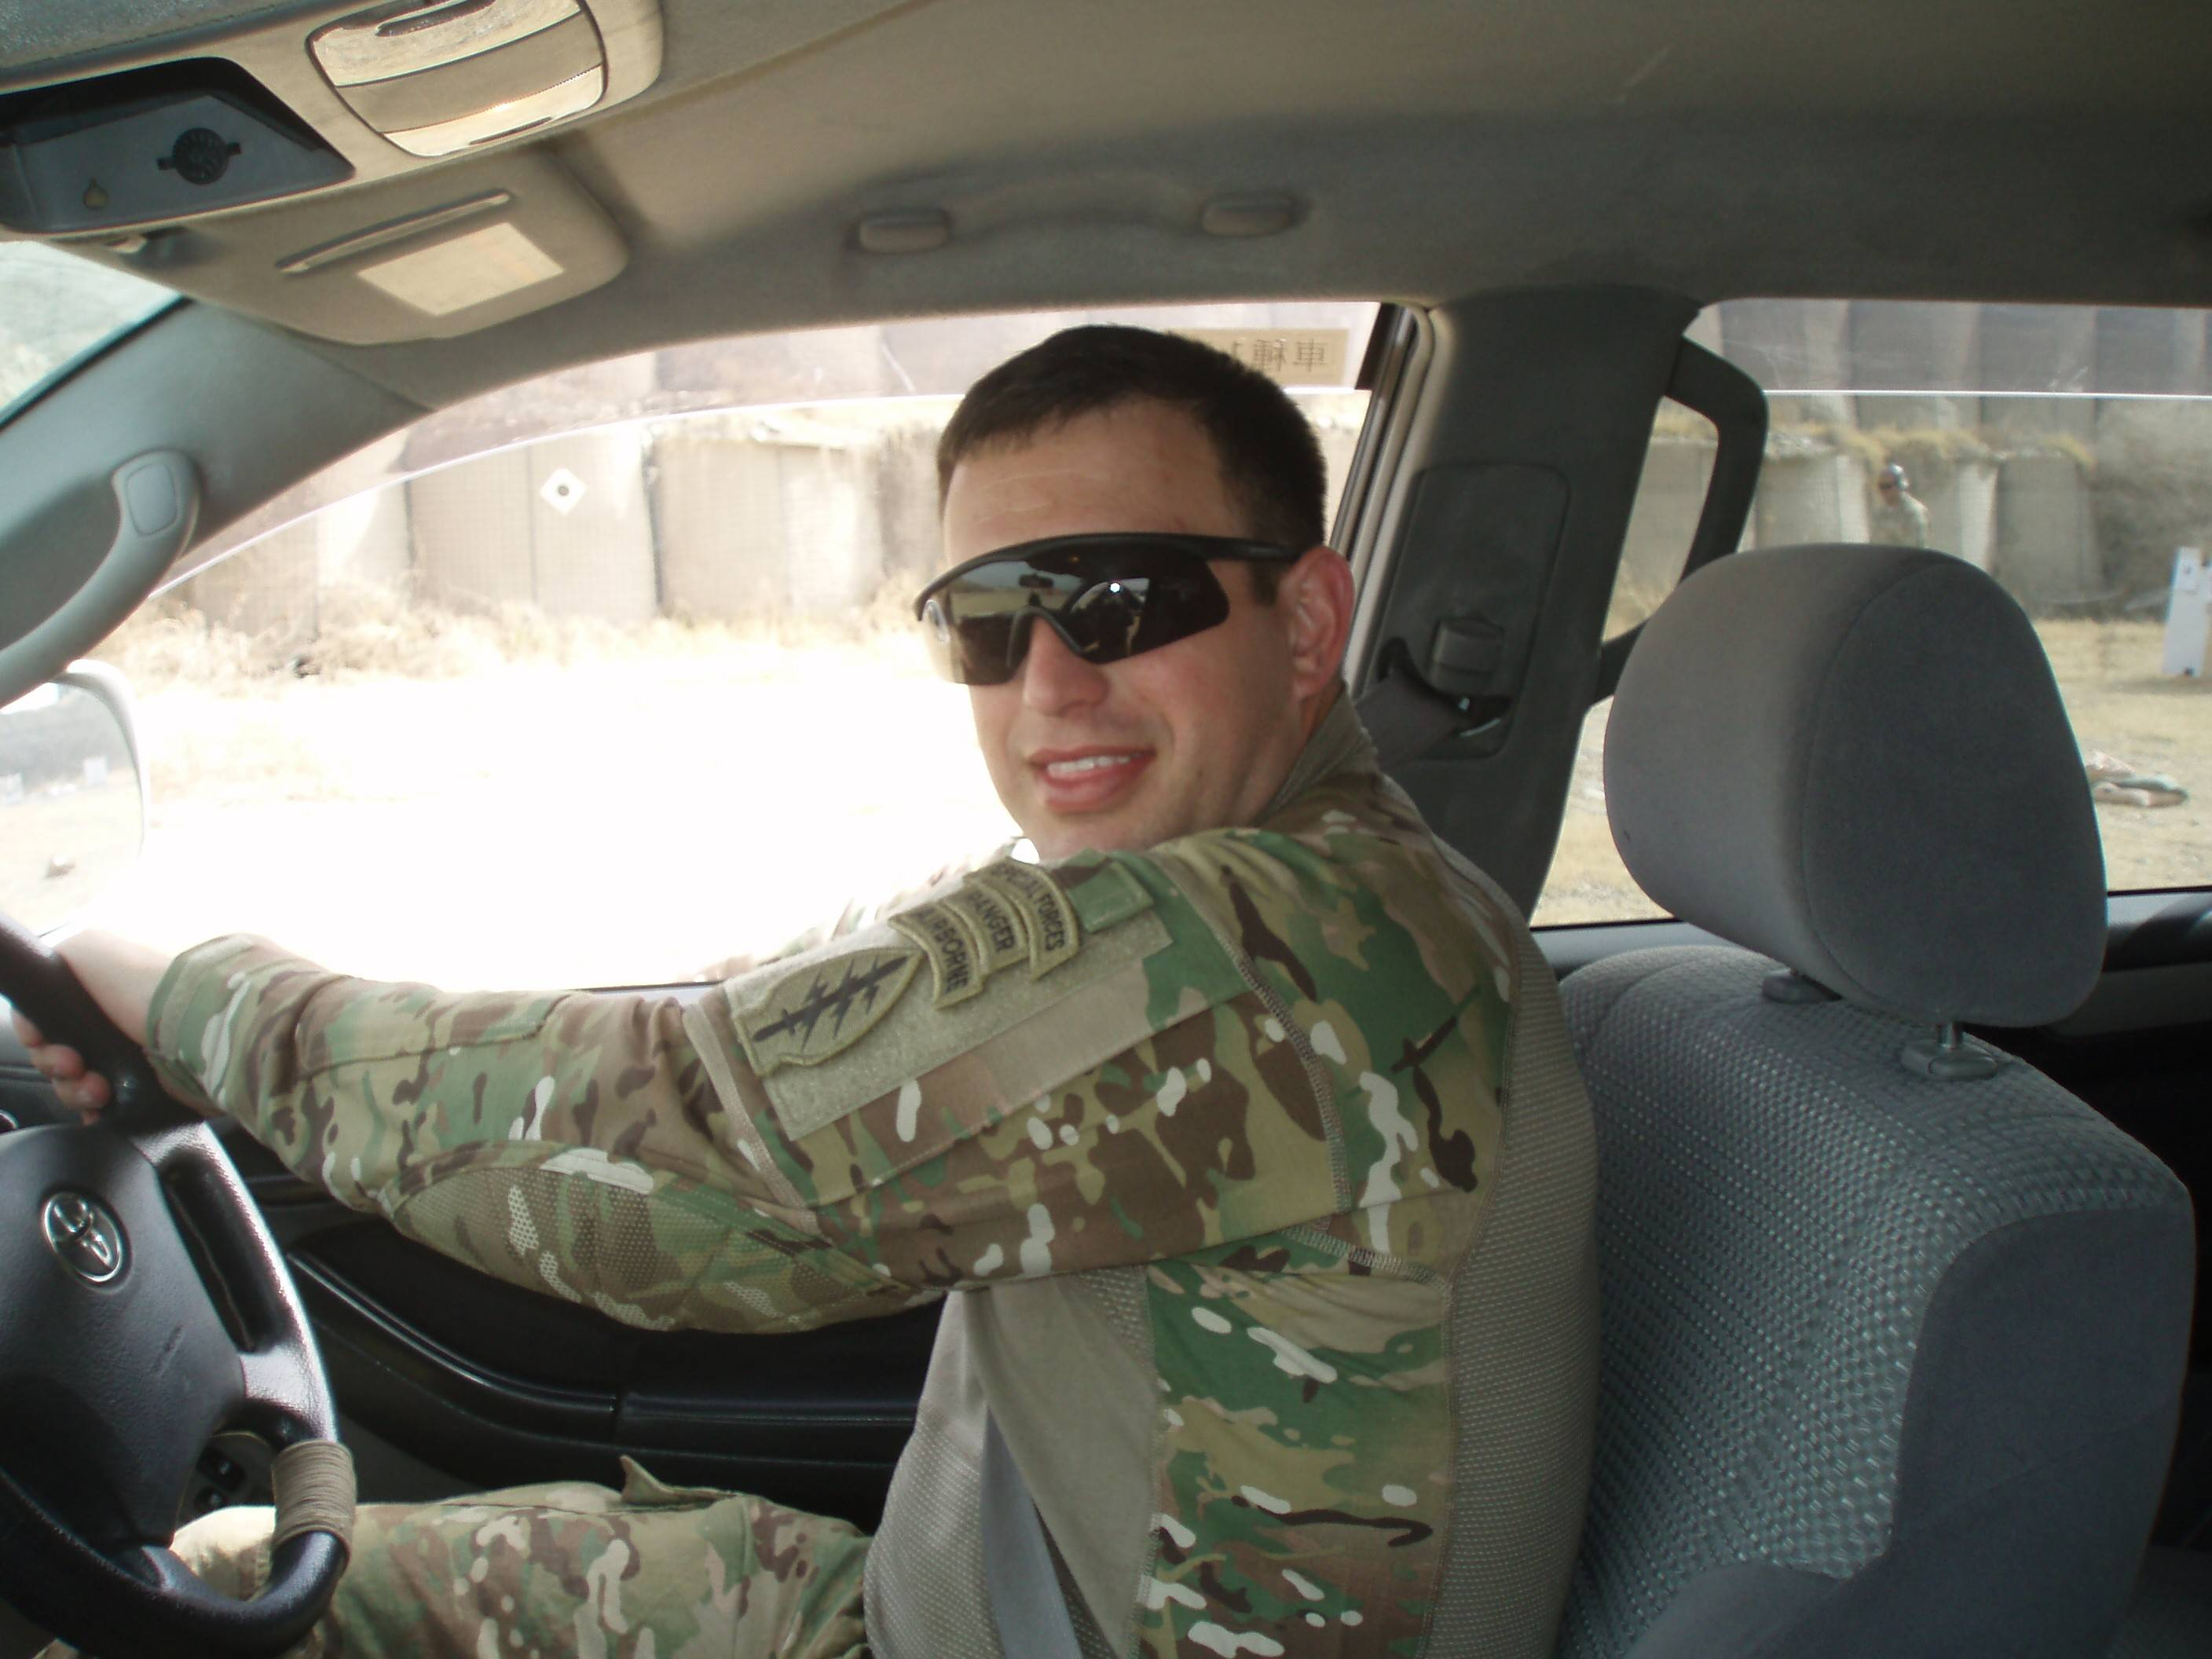 Commander of a Special Forces unit in Afghanistan, Breg Hughes was wounded when his vehicle was hit by a roadside bomb.